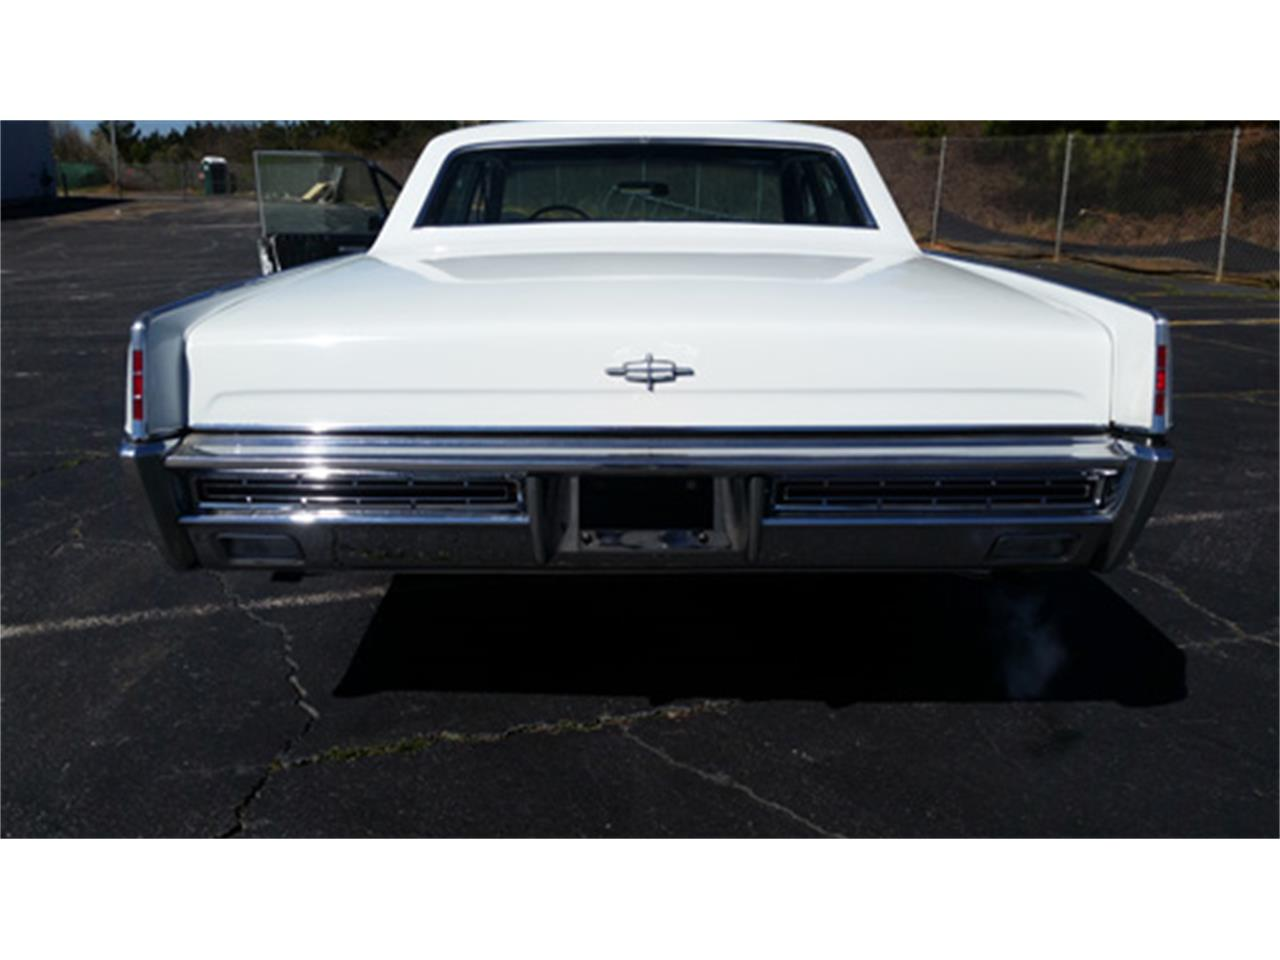 Large Picture of 1967 Lincoln Continental located in South Carolina - $15,988.00 Offered by Dream Cars of the Carolinas - PMJL